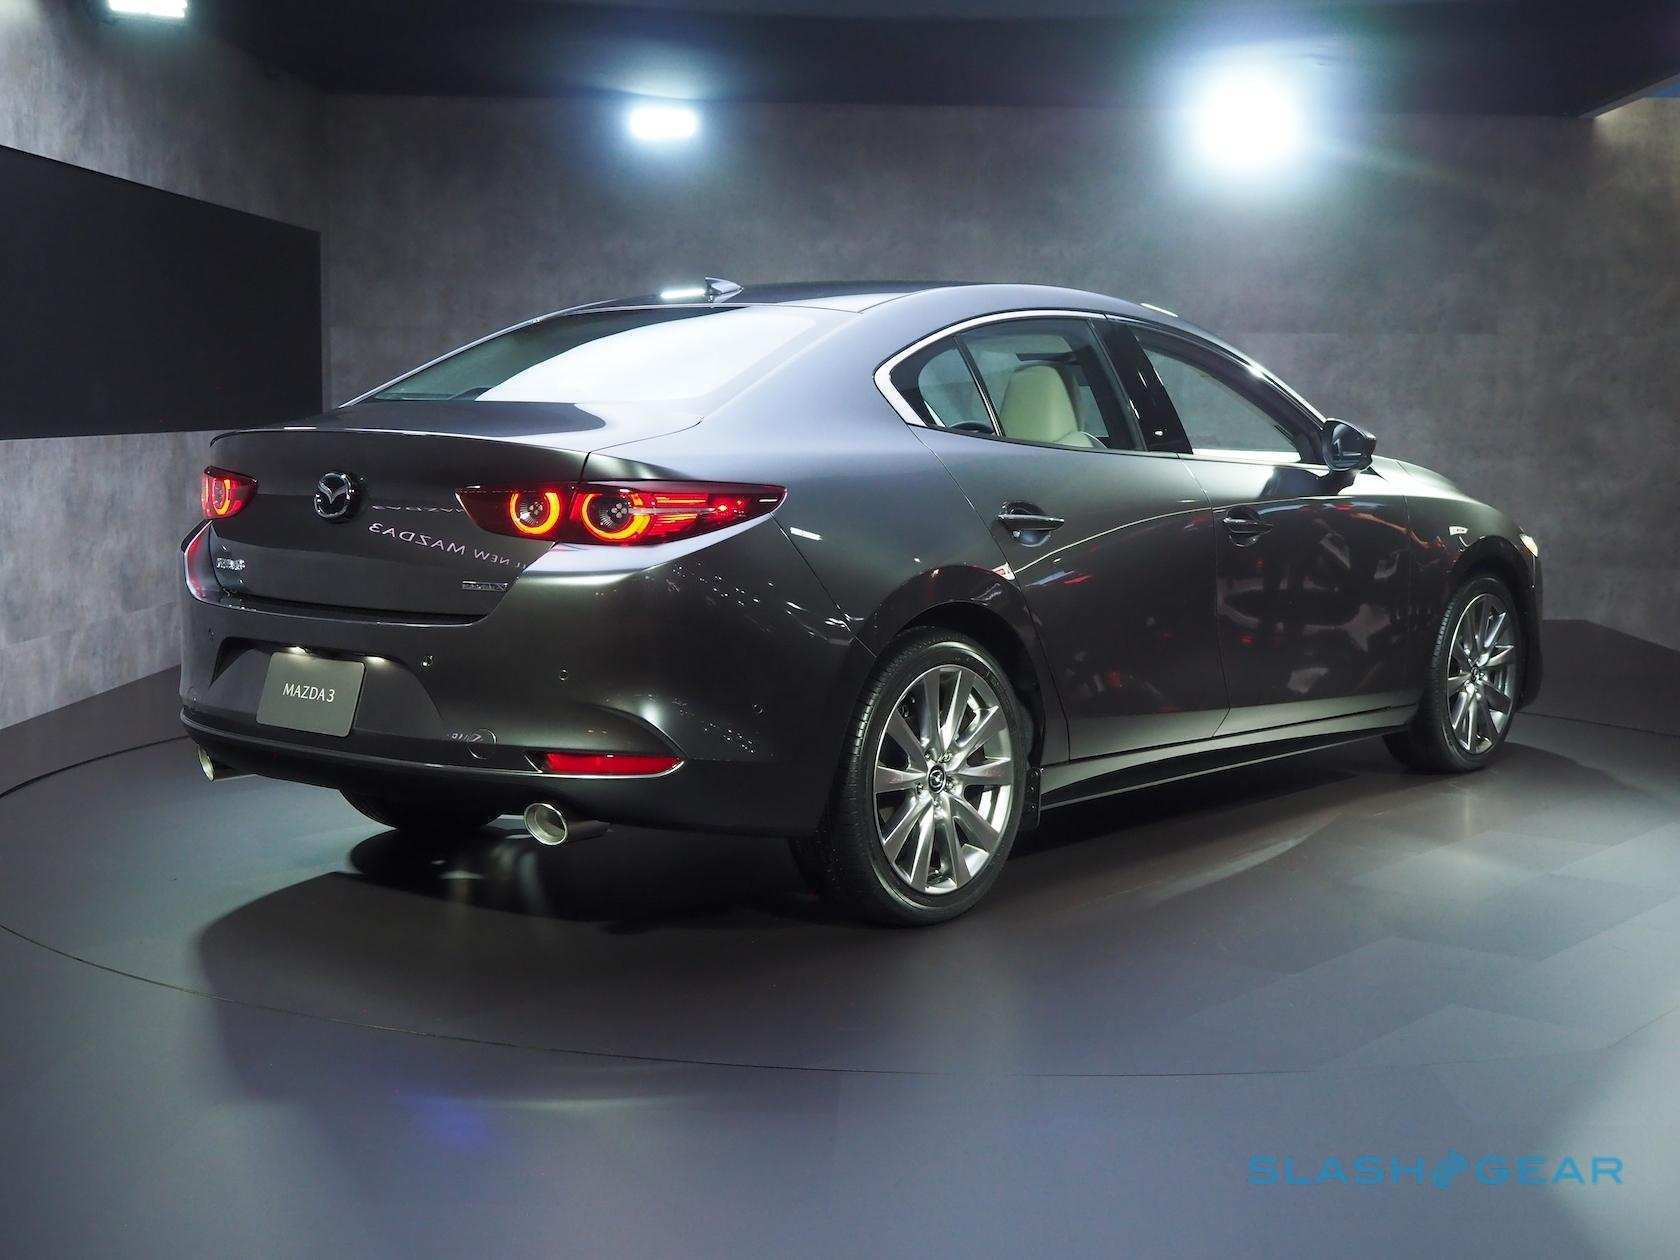 54 All New 2020 Mazda 3 Fuel Economy Exterior And Interior